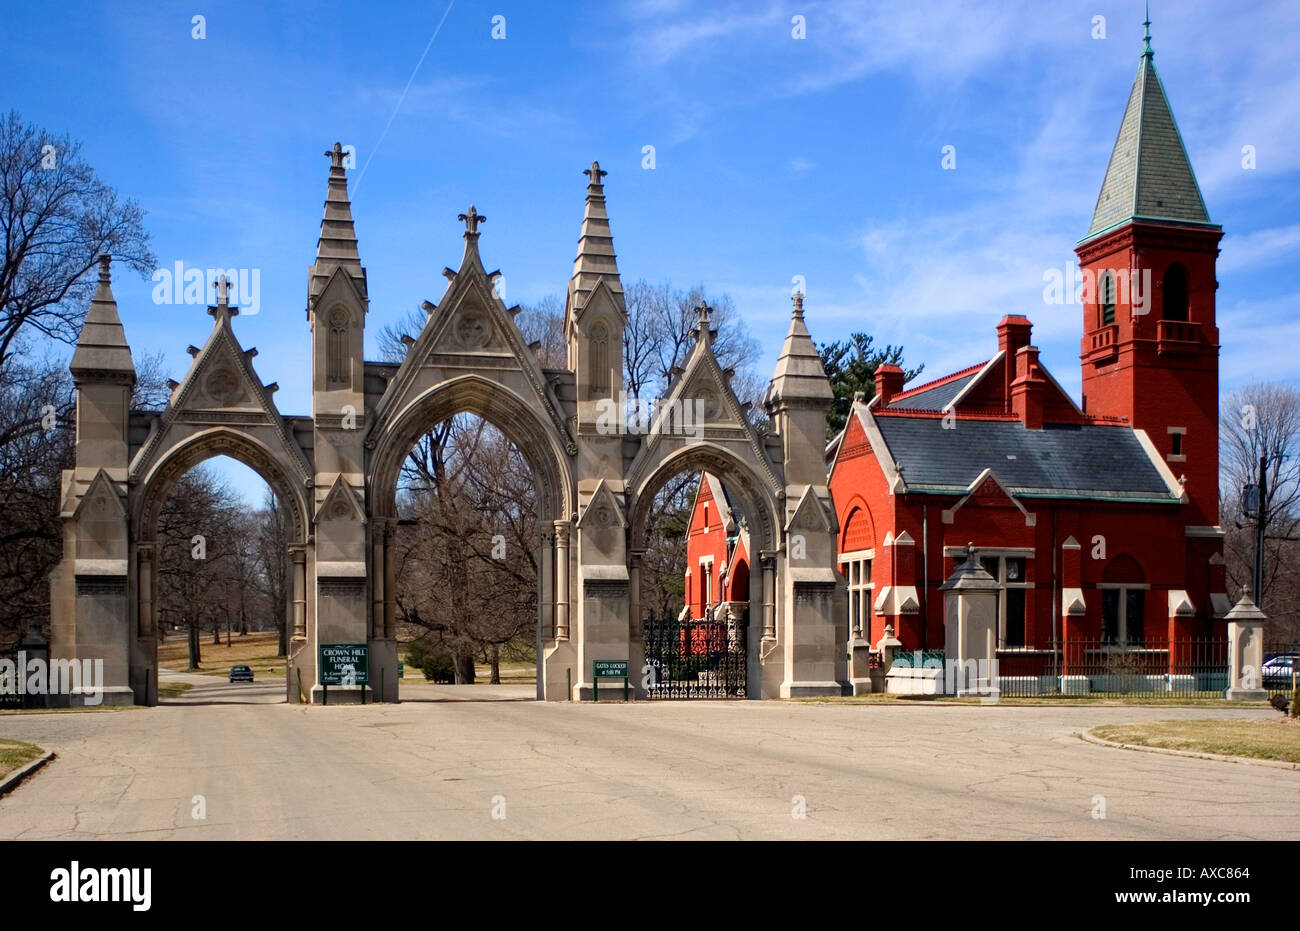 Entrance to Crown Hill Cemetery in Indianapolis Indiana where many famous individuals are buried - Stock Image